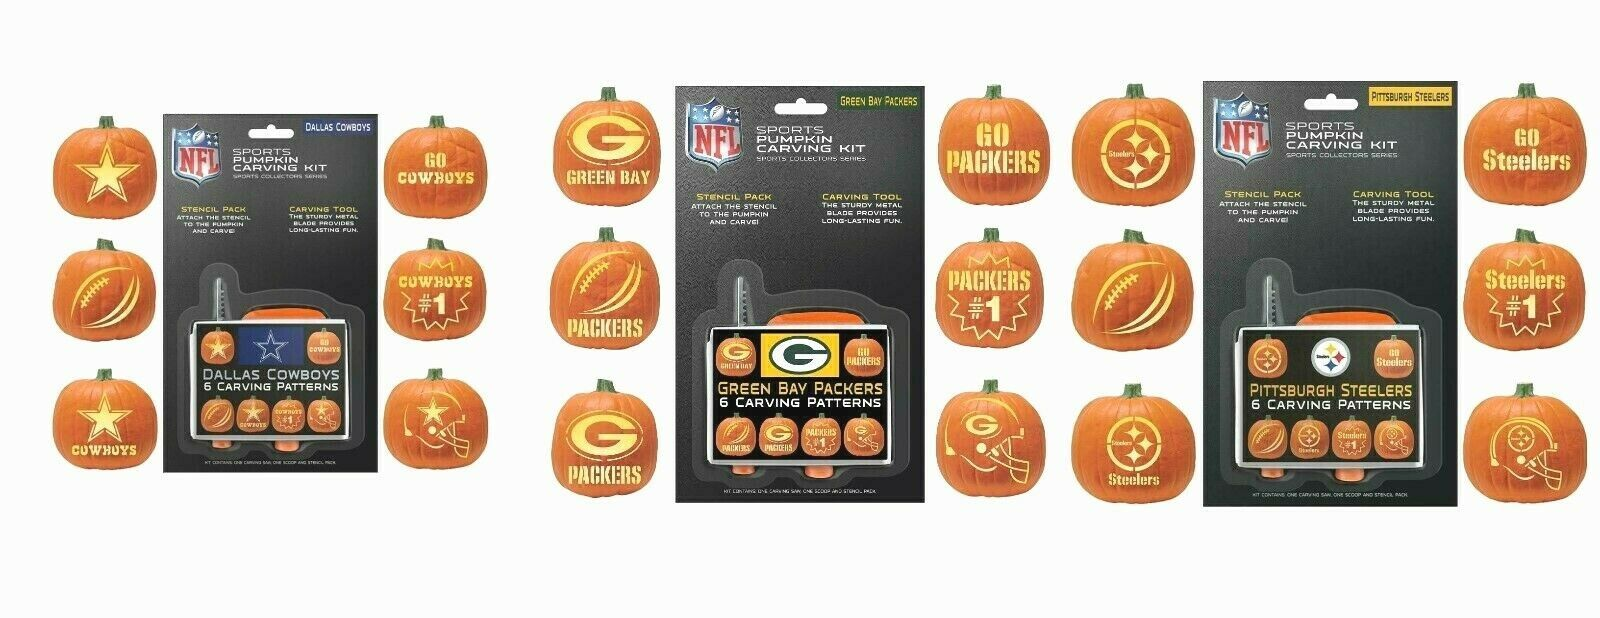 NFL TEAM HALLOWEEN PUMPKIN CARVING KIT WITH 6 STENCILS -CHOOSE YOUR TEAM - $7.99